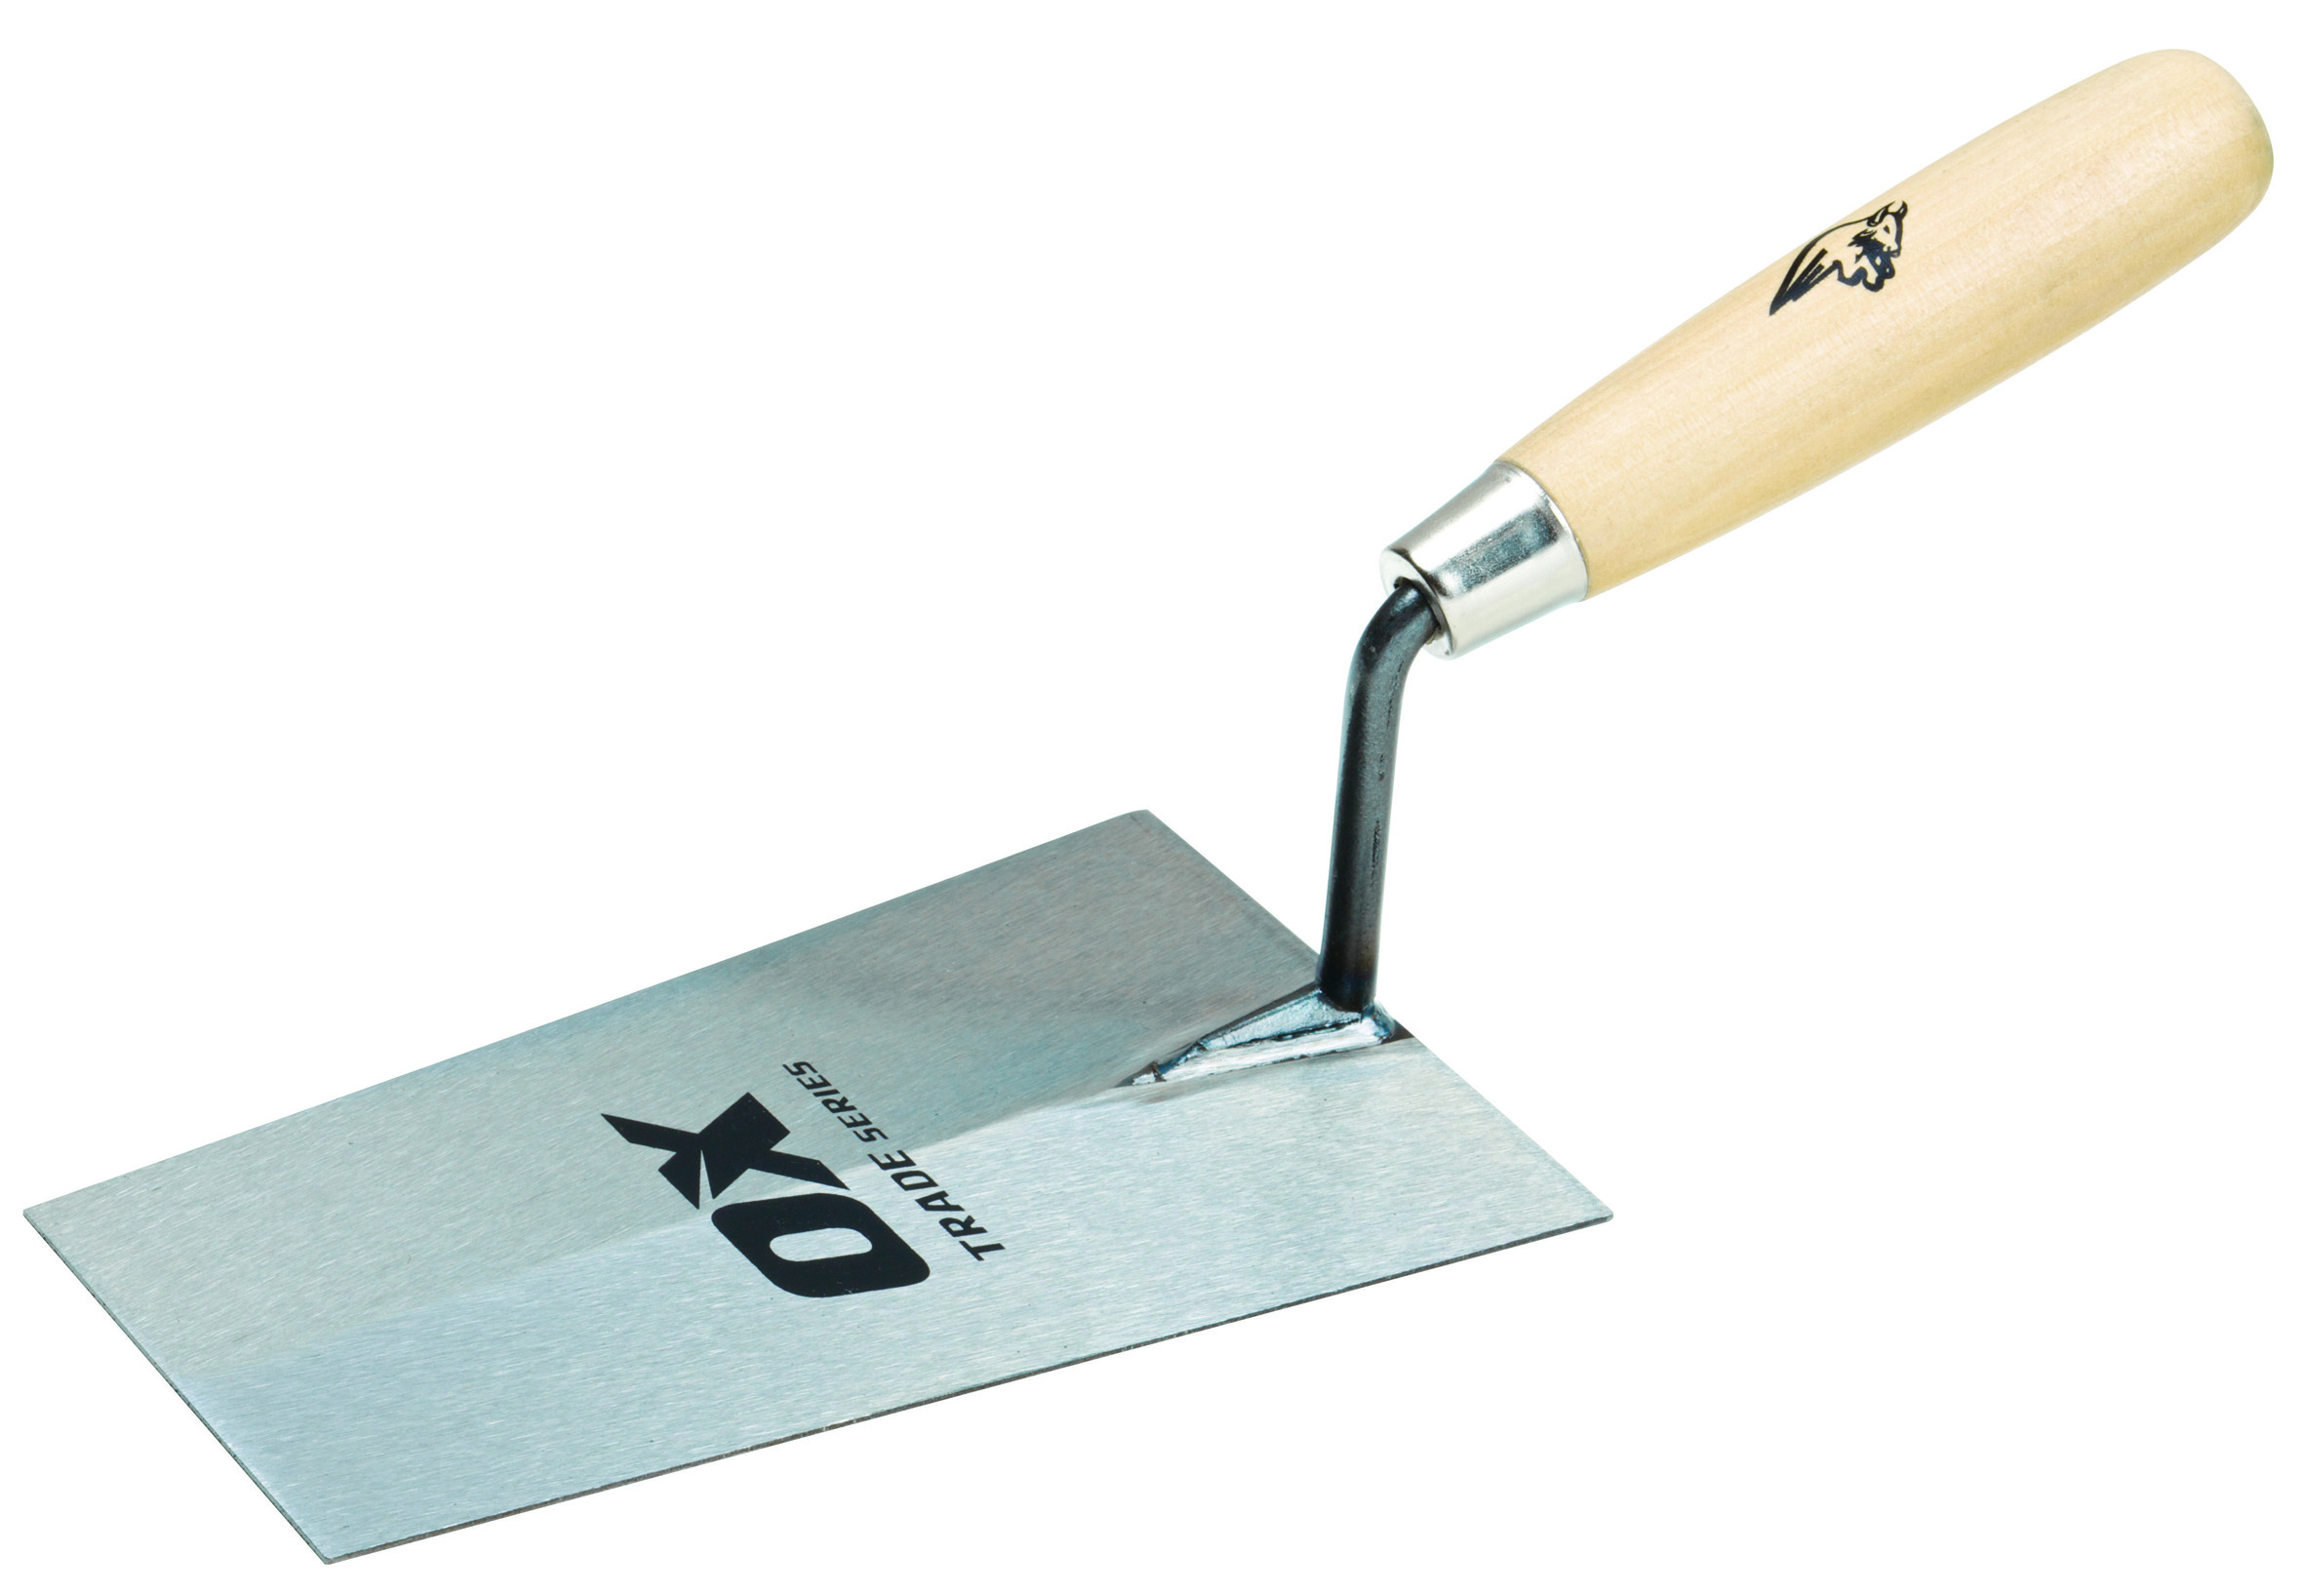 "OX TRADE BUCKET TROWEL - WOODEN HANDLE / 7"" / 180MM"